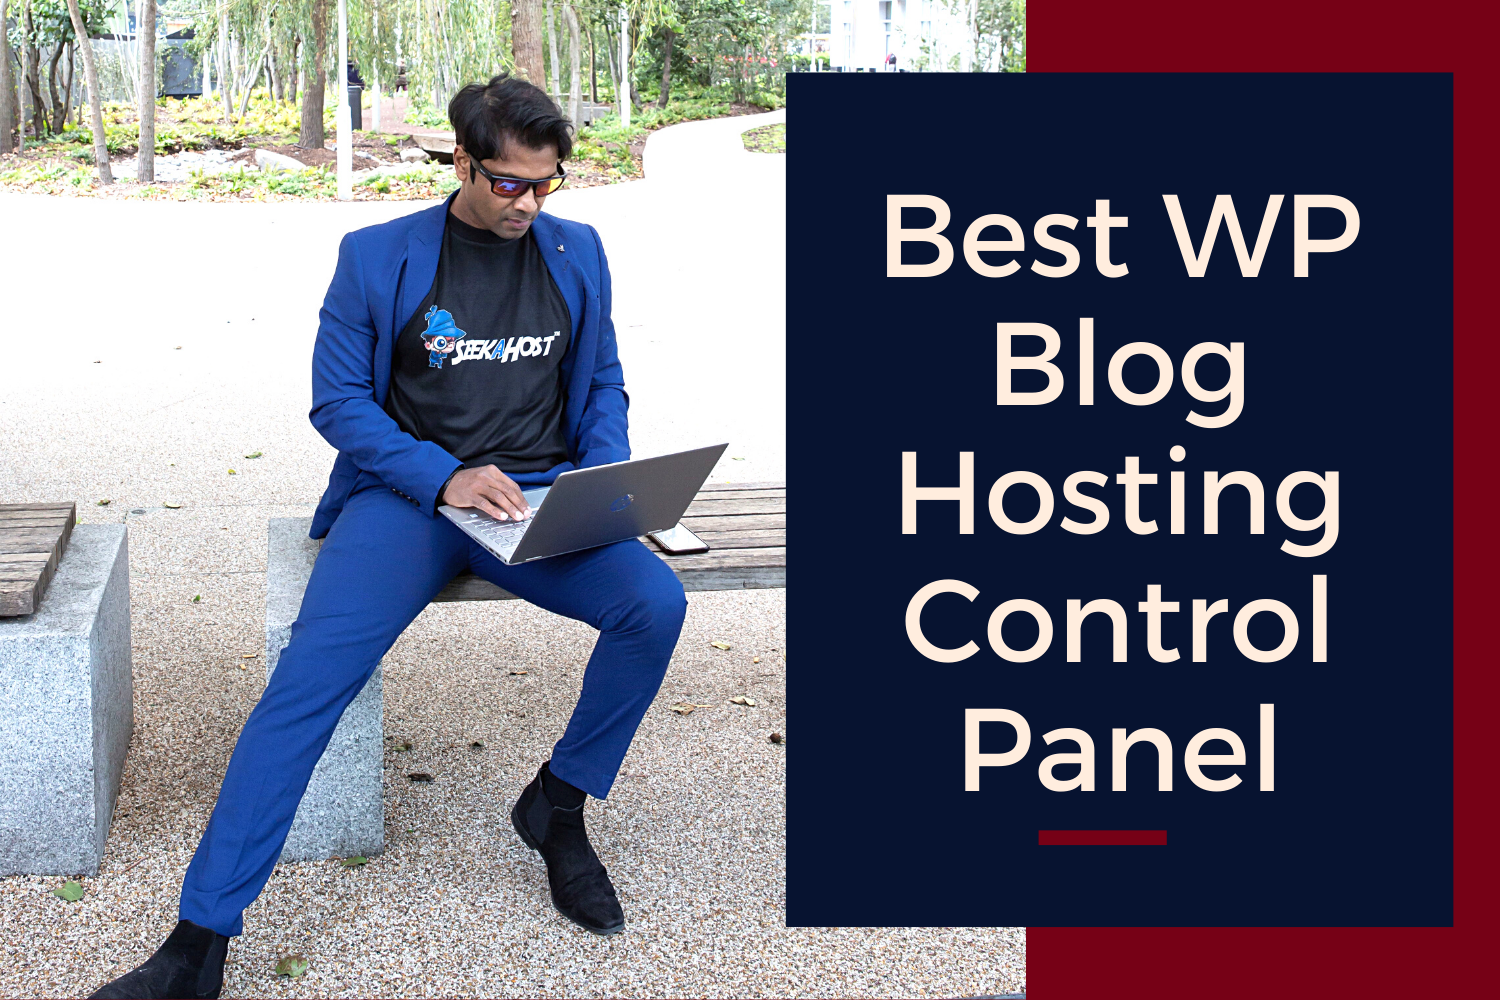 Best WP Blog Hosting Control Panel for Bloggers & Websites